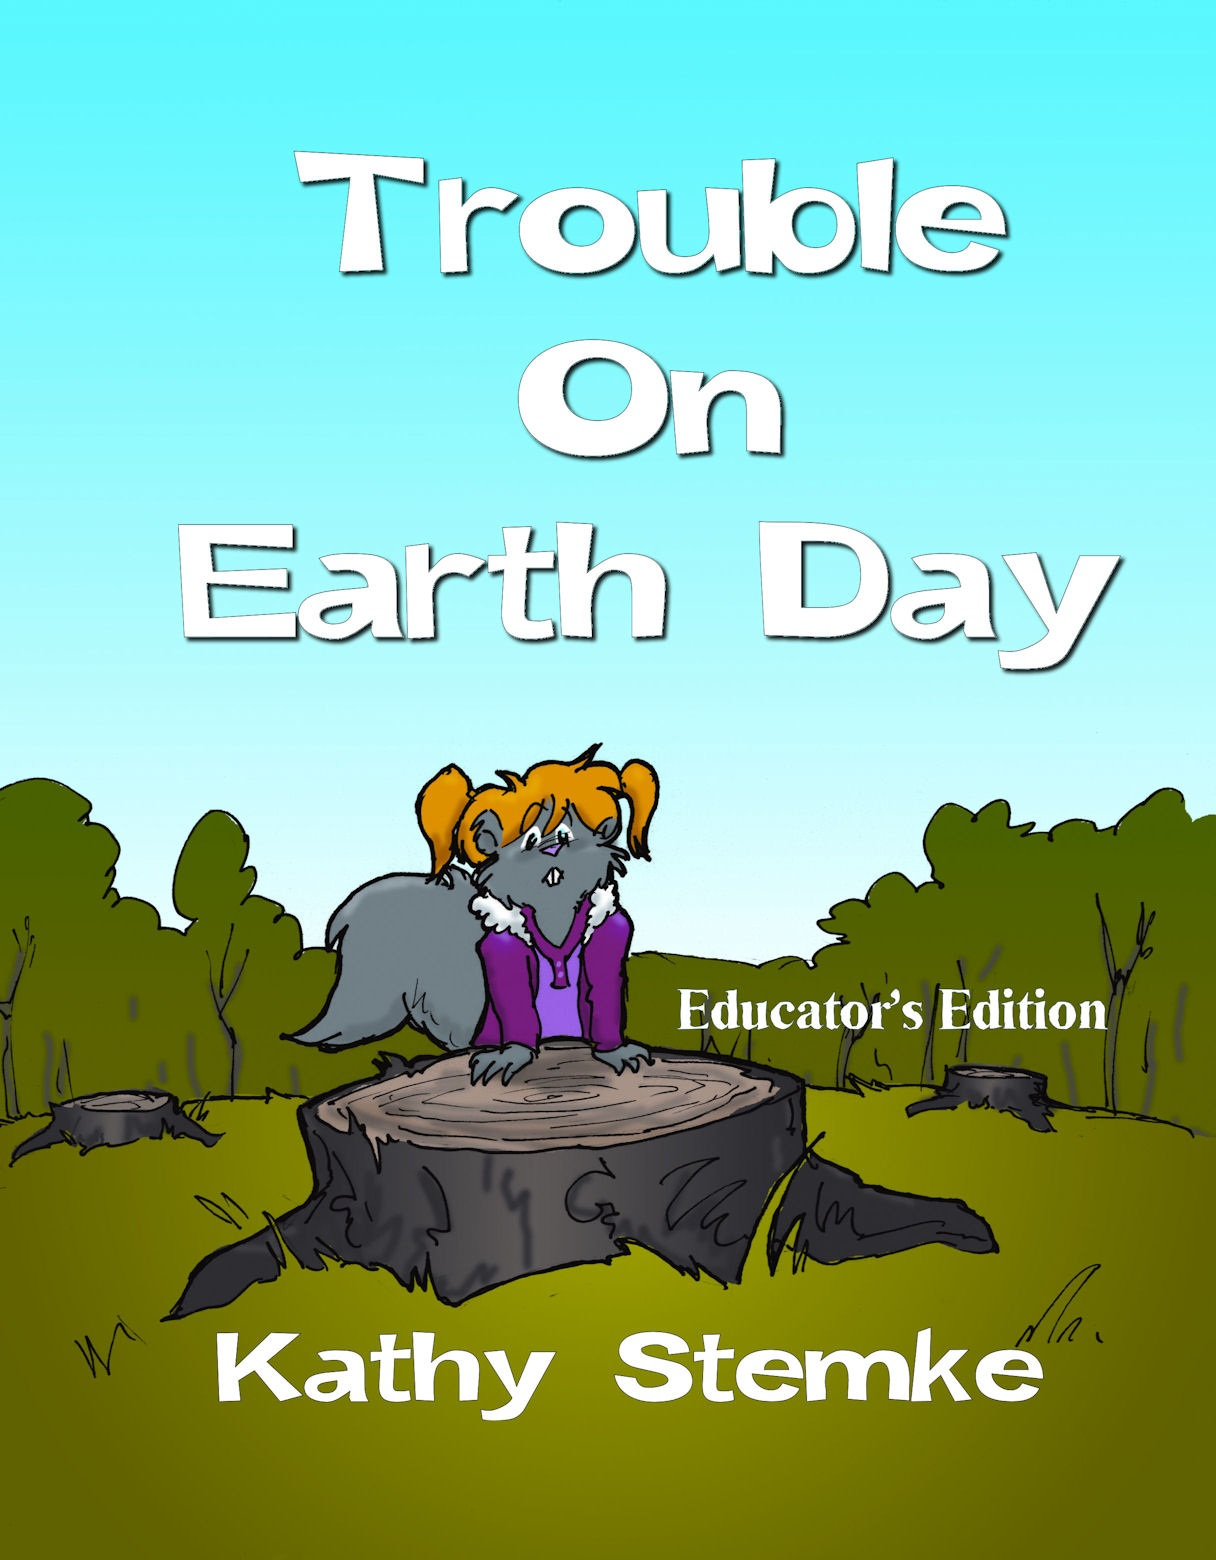 Trouble on Earth Day opens in the cozy home of the anthropomorphic squirrel ...